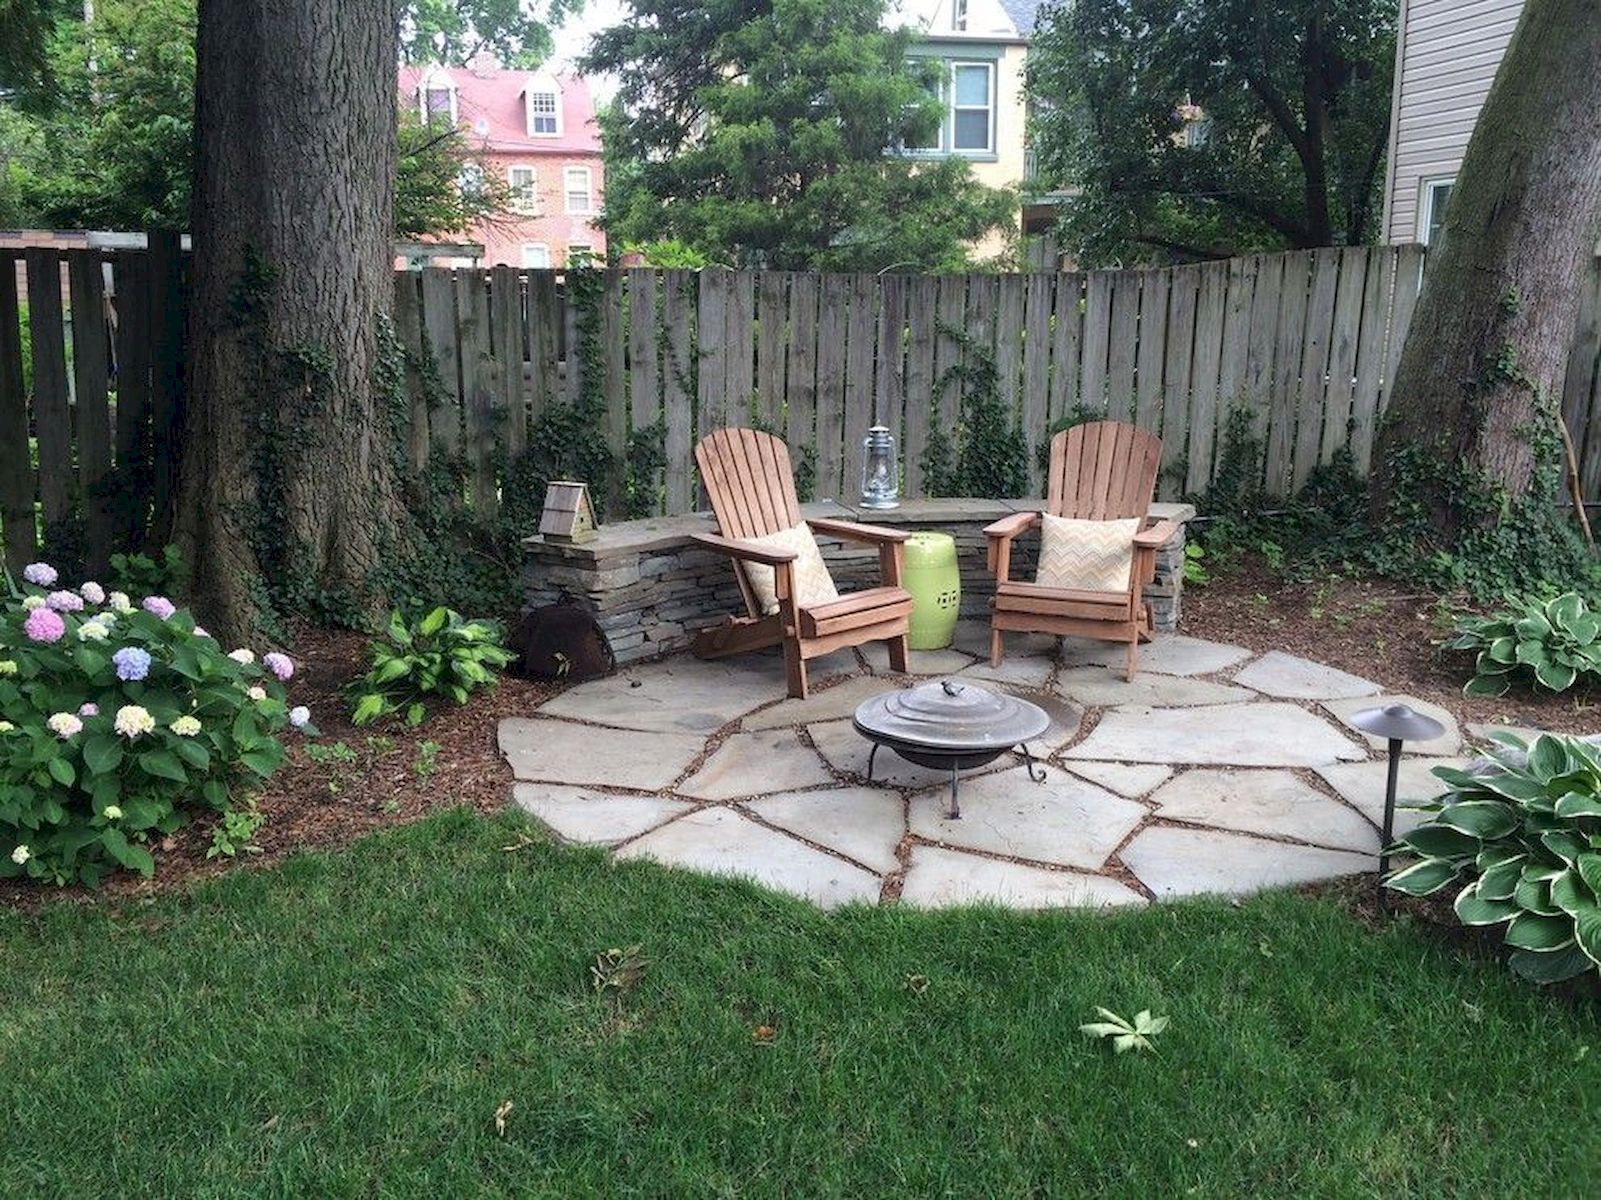 52 Most Creative Cheap Backyard Patio Ideas on A Budget ...